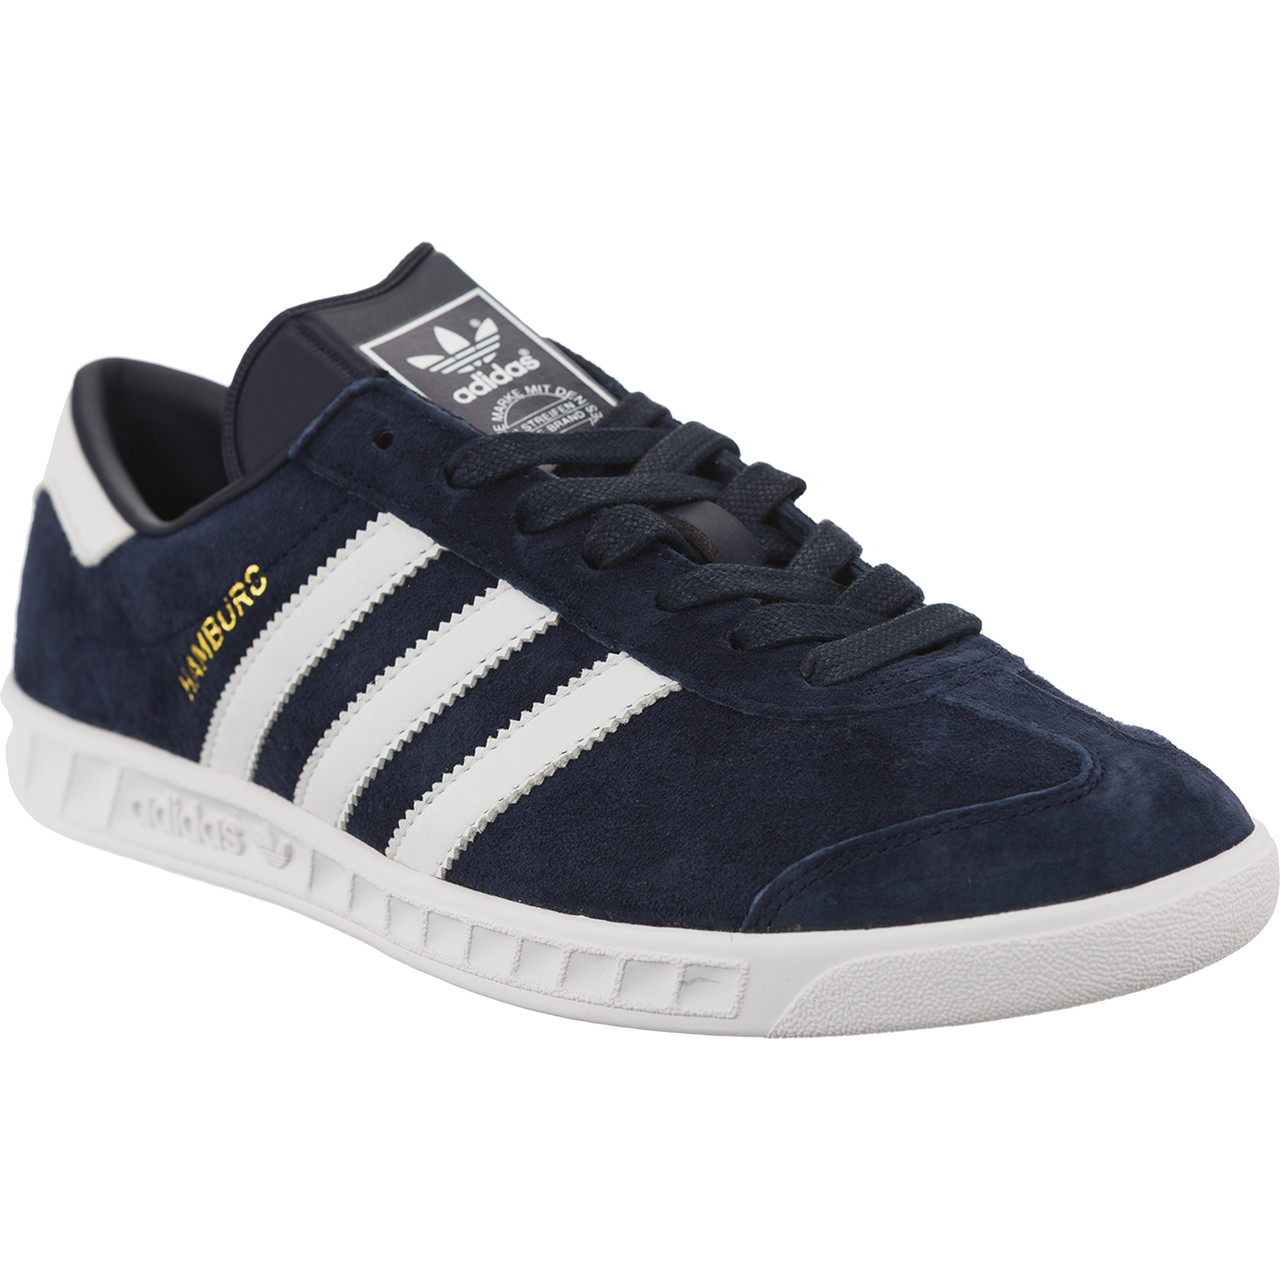 buty adidas hamburg 838 collegiate navy w sklepie. Black Bedroom Furniture Sets. Home Design Ideas